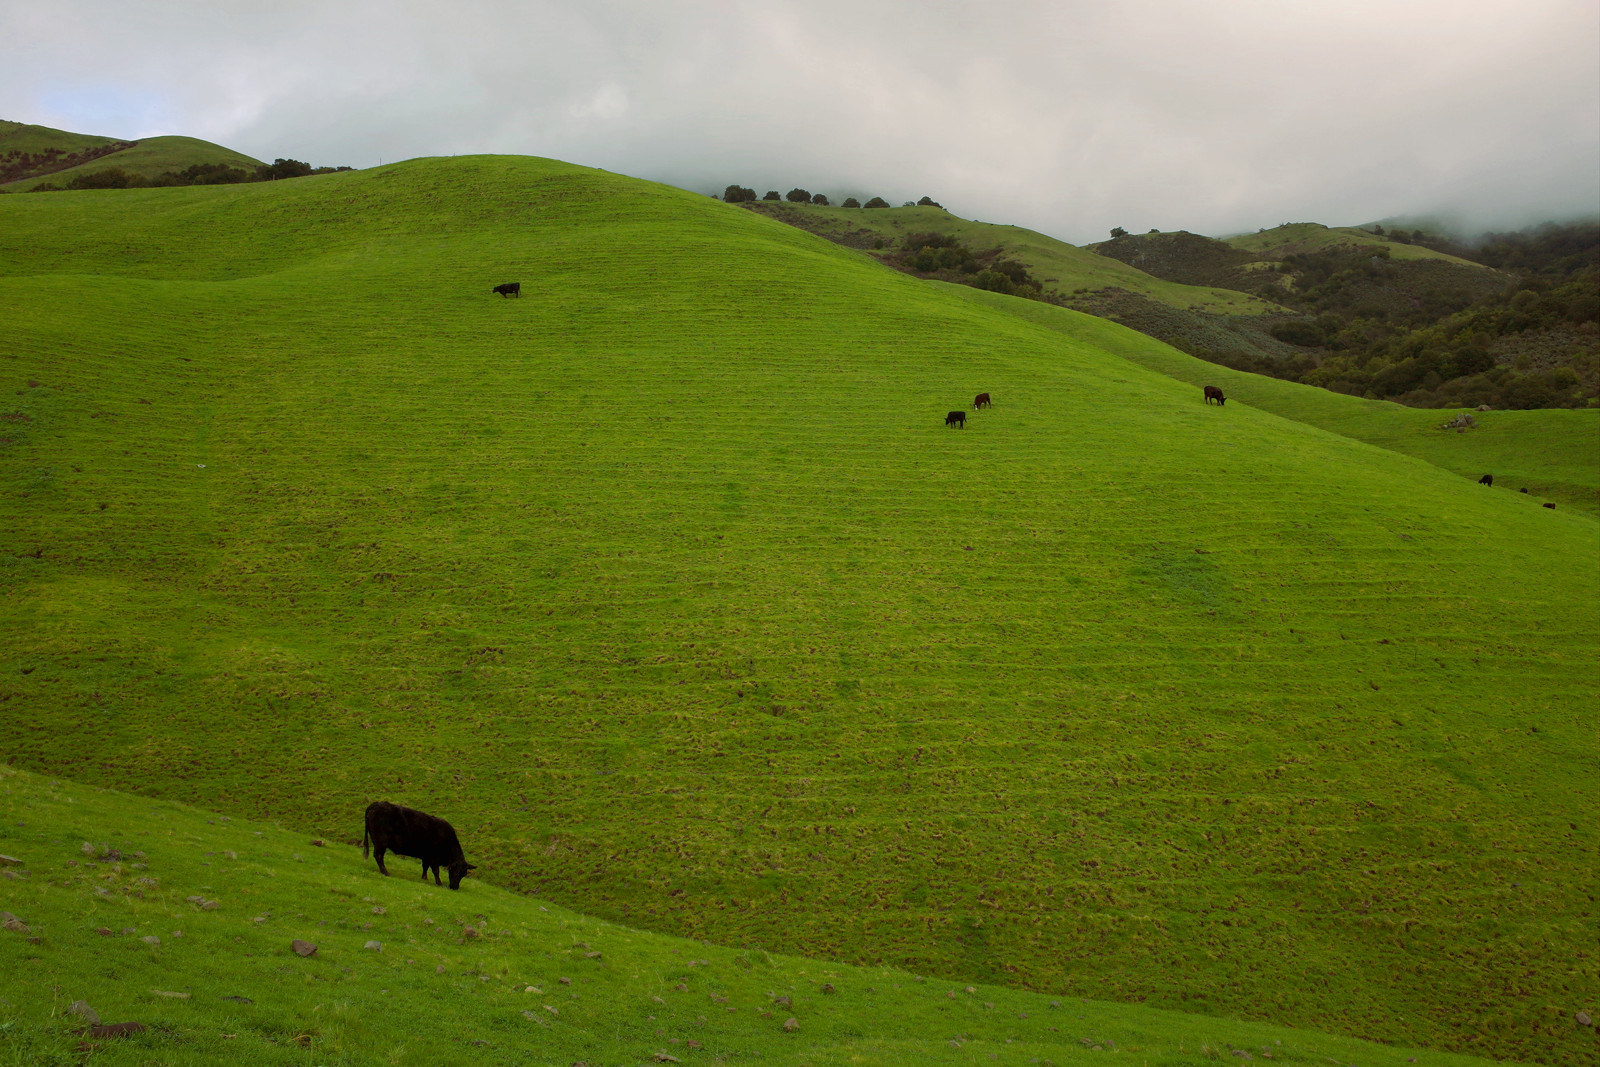 Cows on the Mission Peak hillside